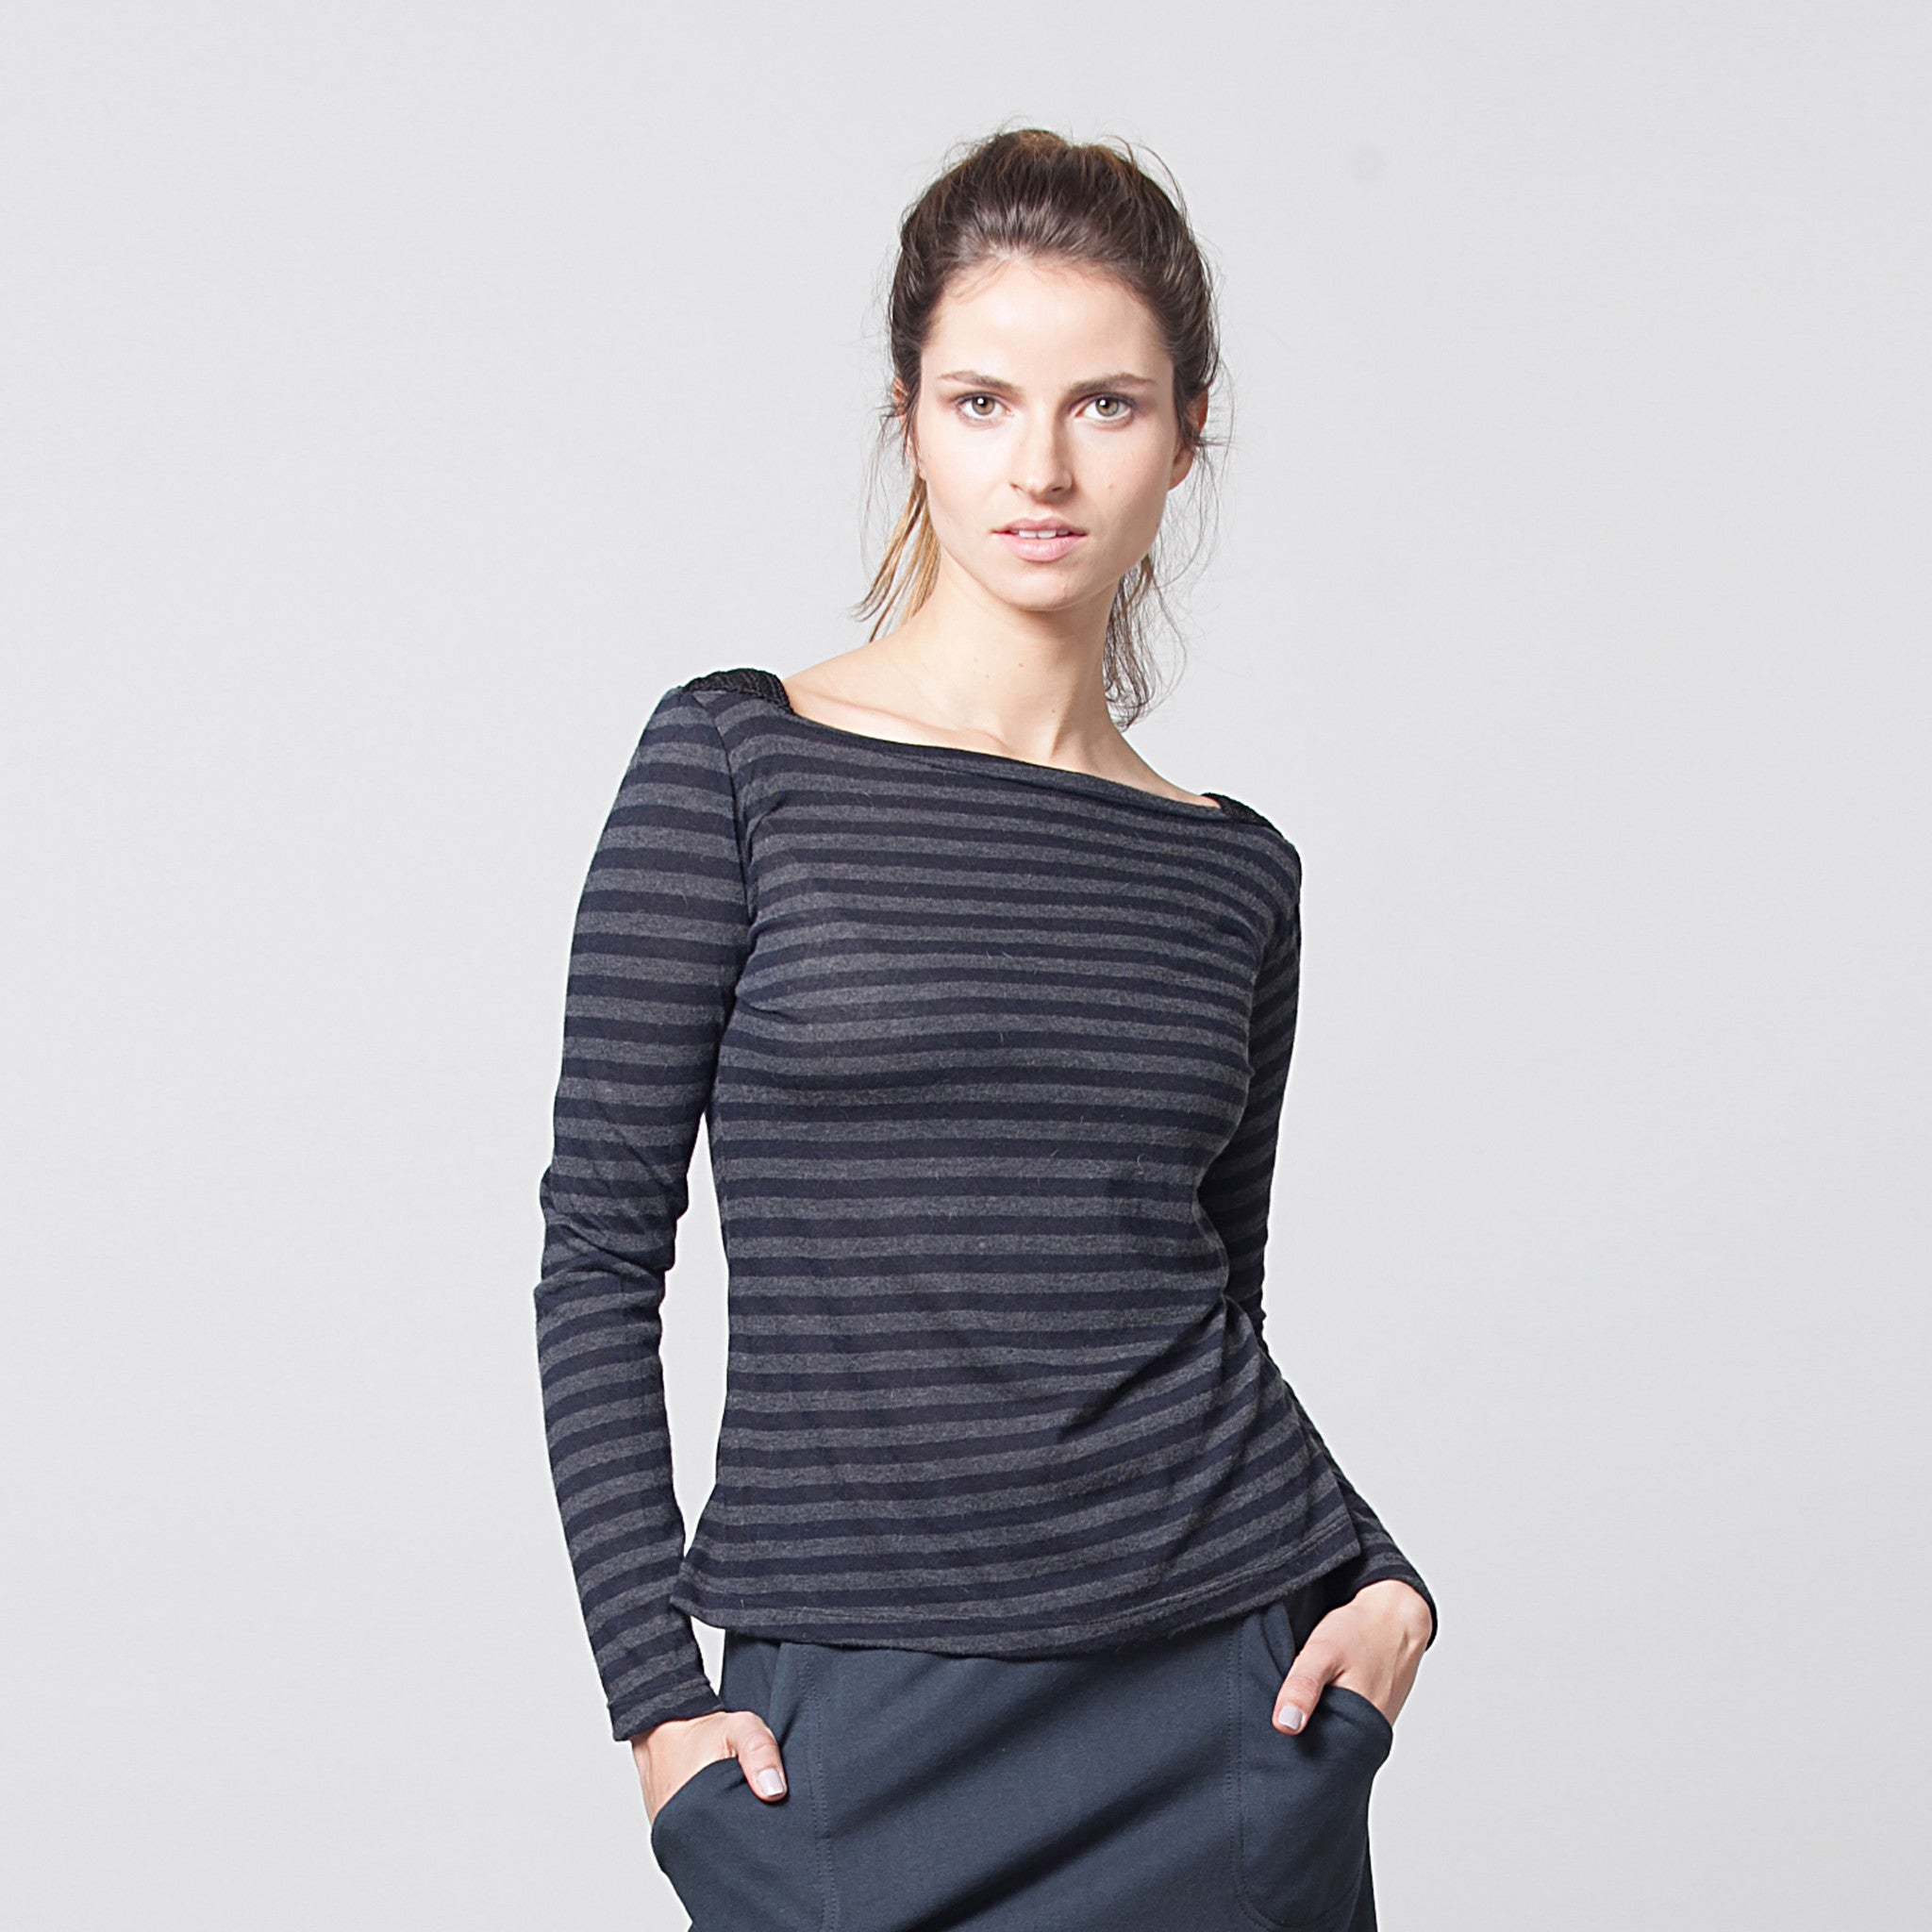 Boat neck cashmere stripes top - DuendeFashion  - 2